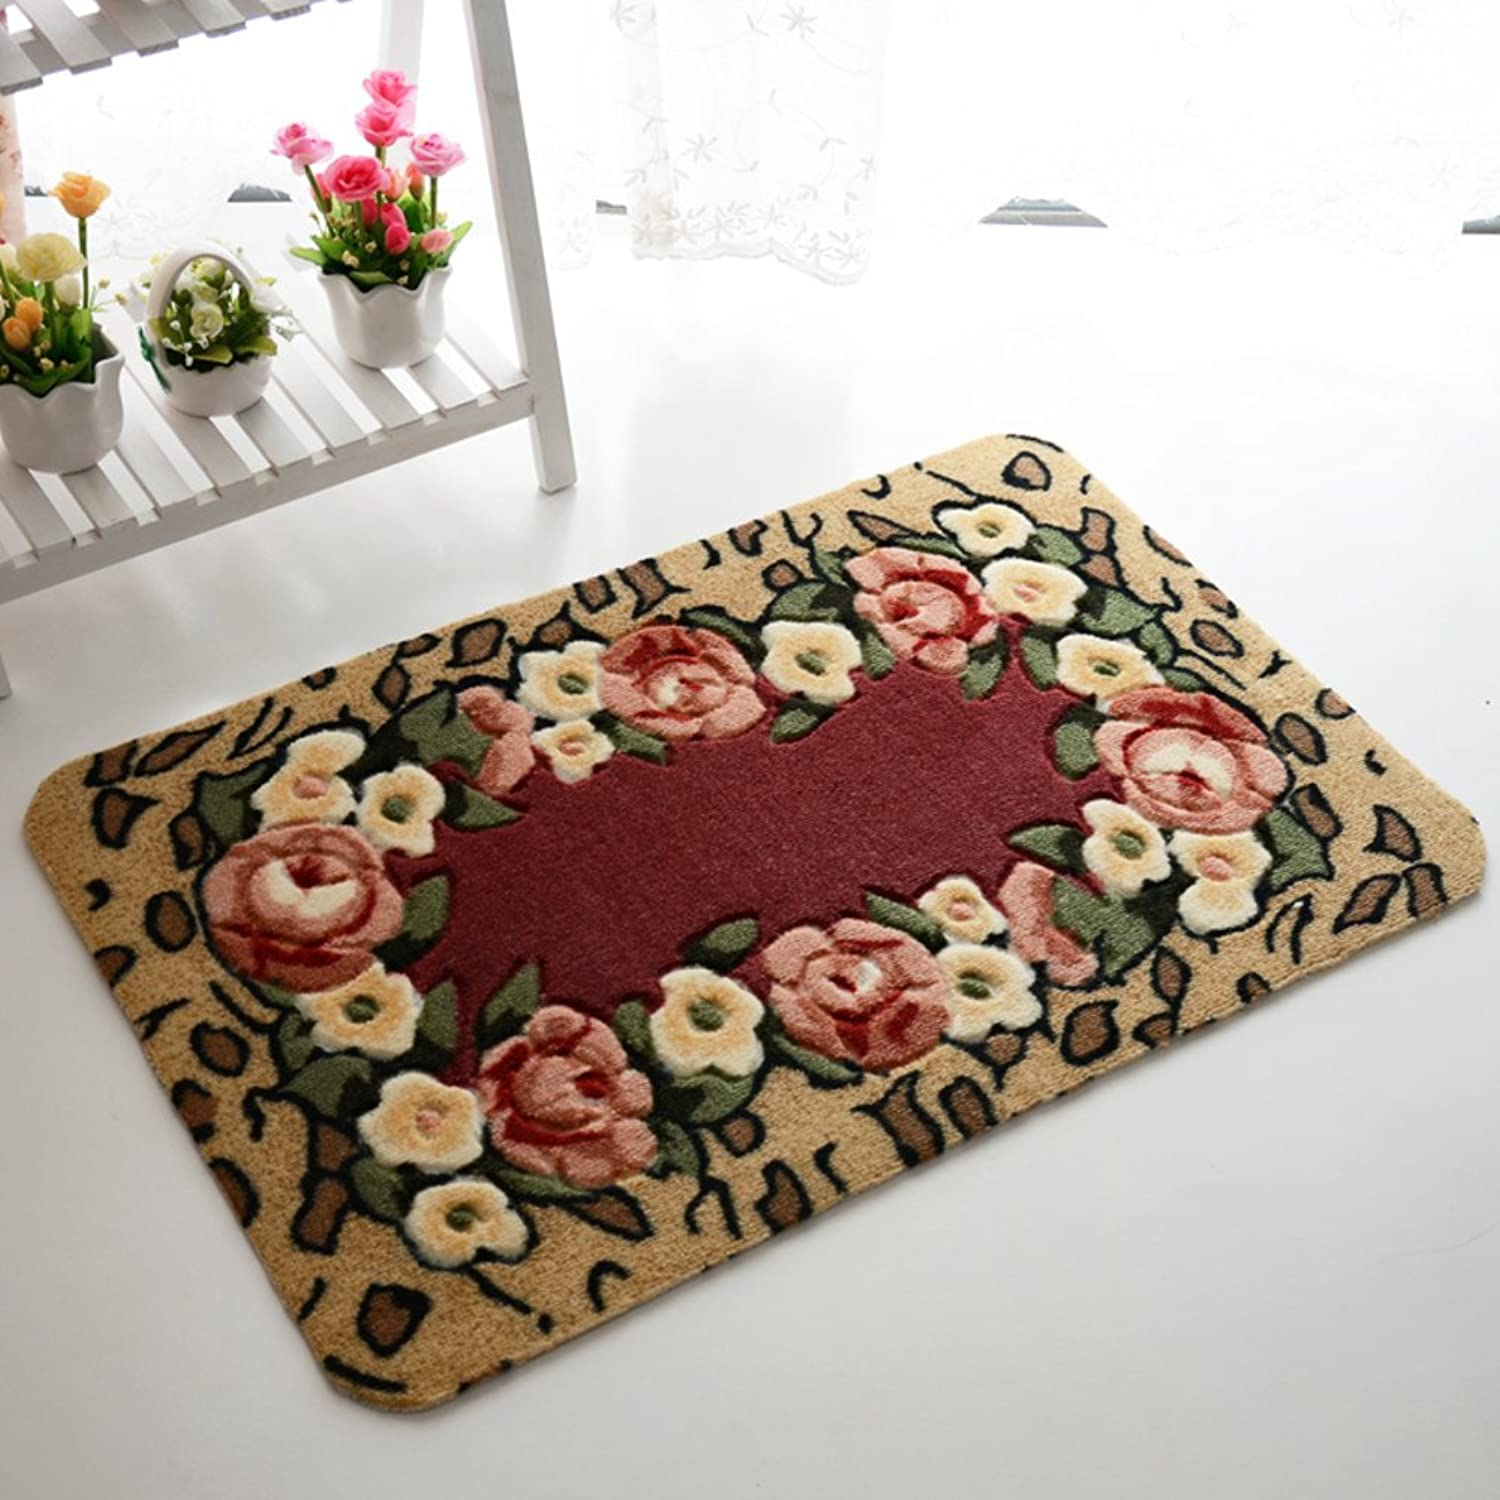 Entrance,Indoor Mats Fashion,Rural, Cut Flower Mats Kitchen,Bathroom,Anti-skidding,Absorbent,Bedroom Mats Floor Mat-C 70x140cm(28x55inch)